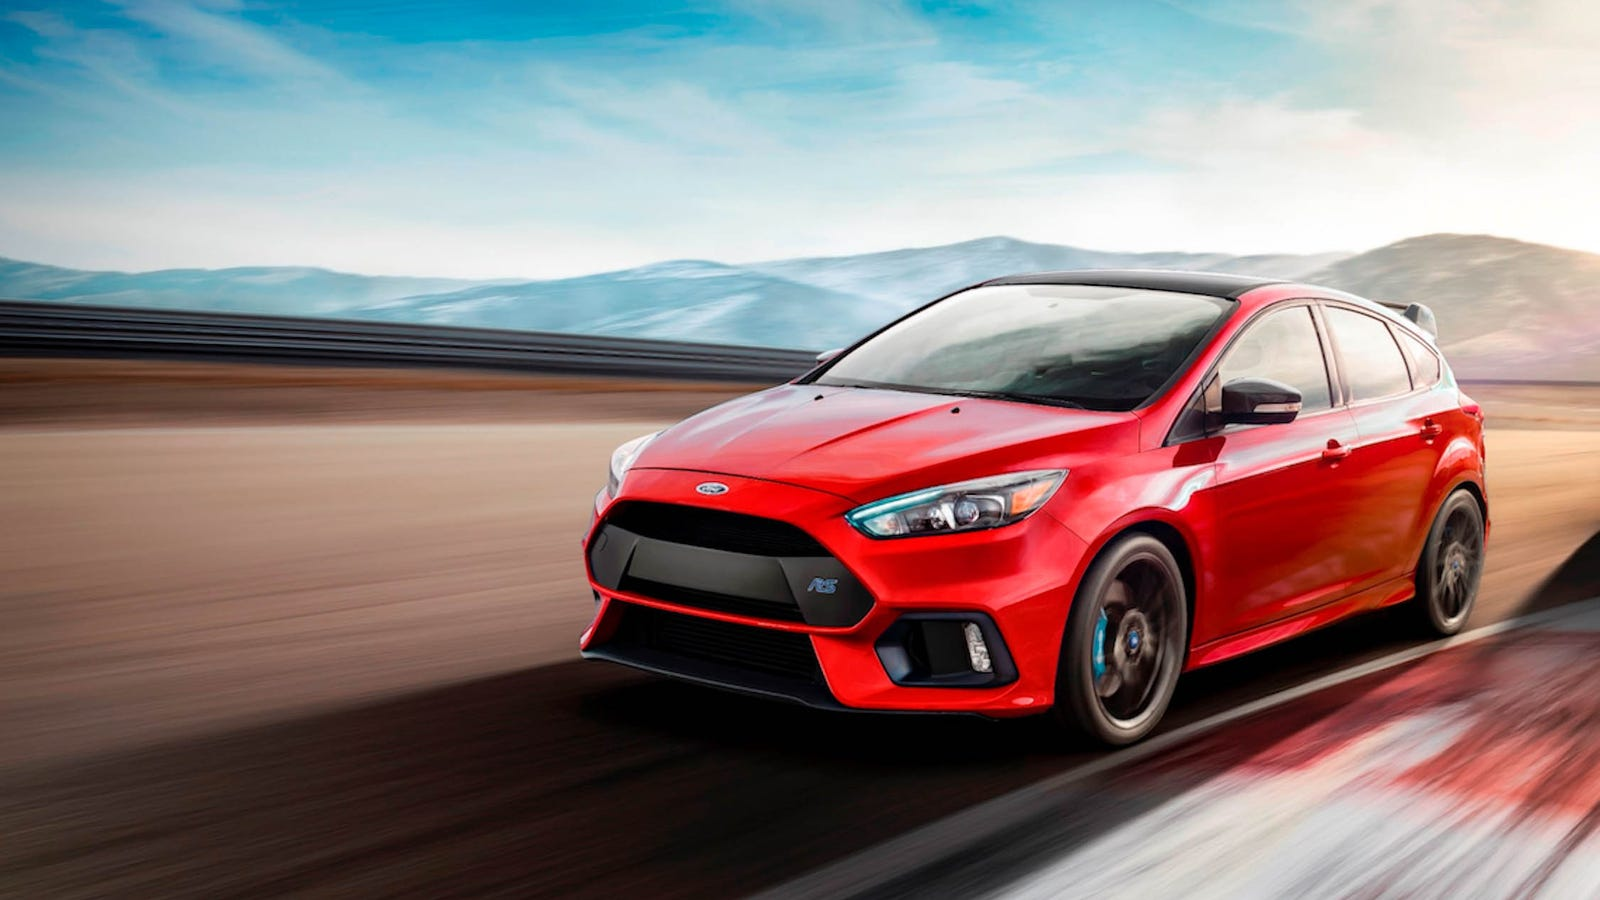 packs focus price horsepower autoblog ford into ride the rs hennessey along